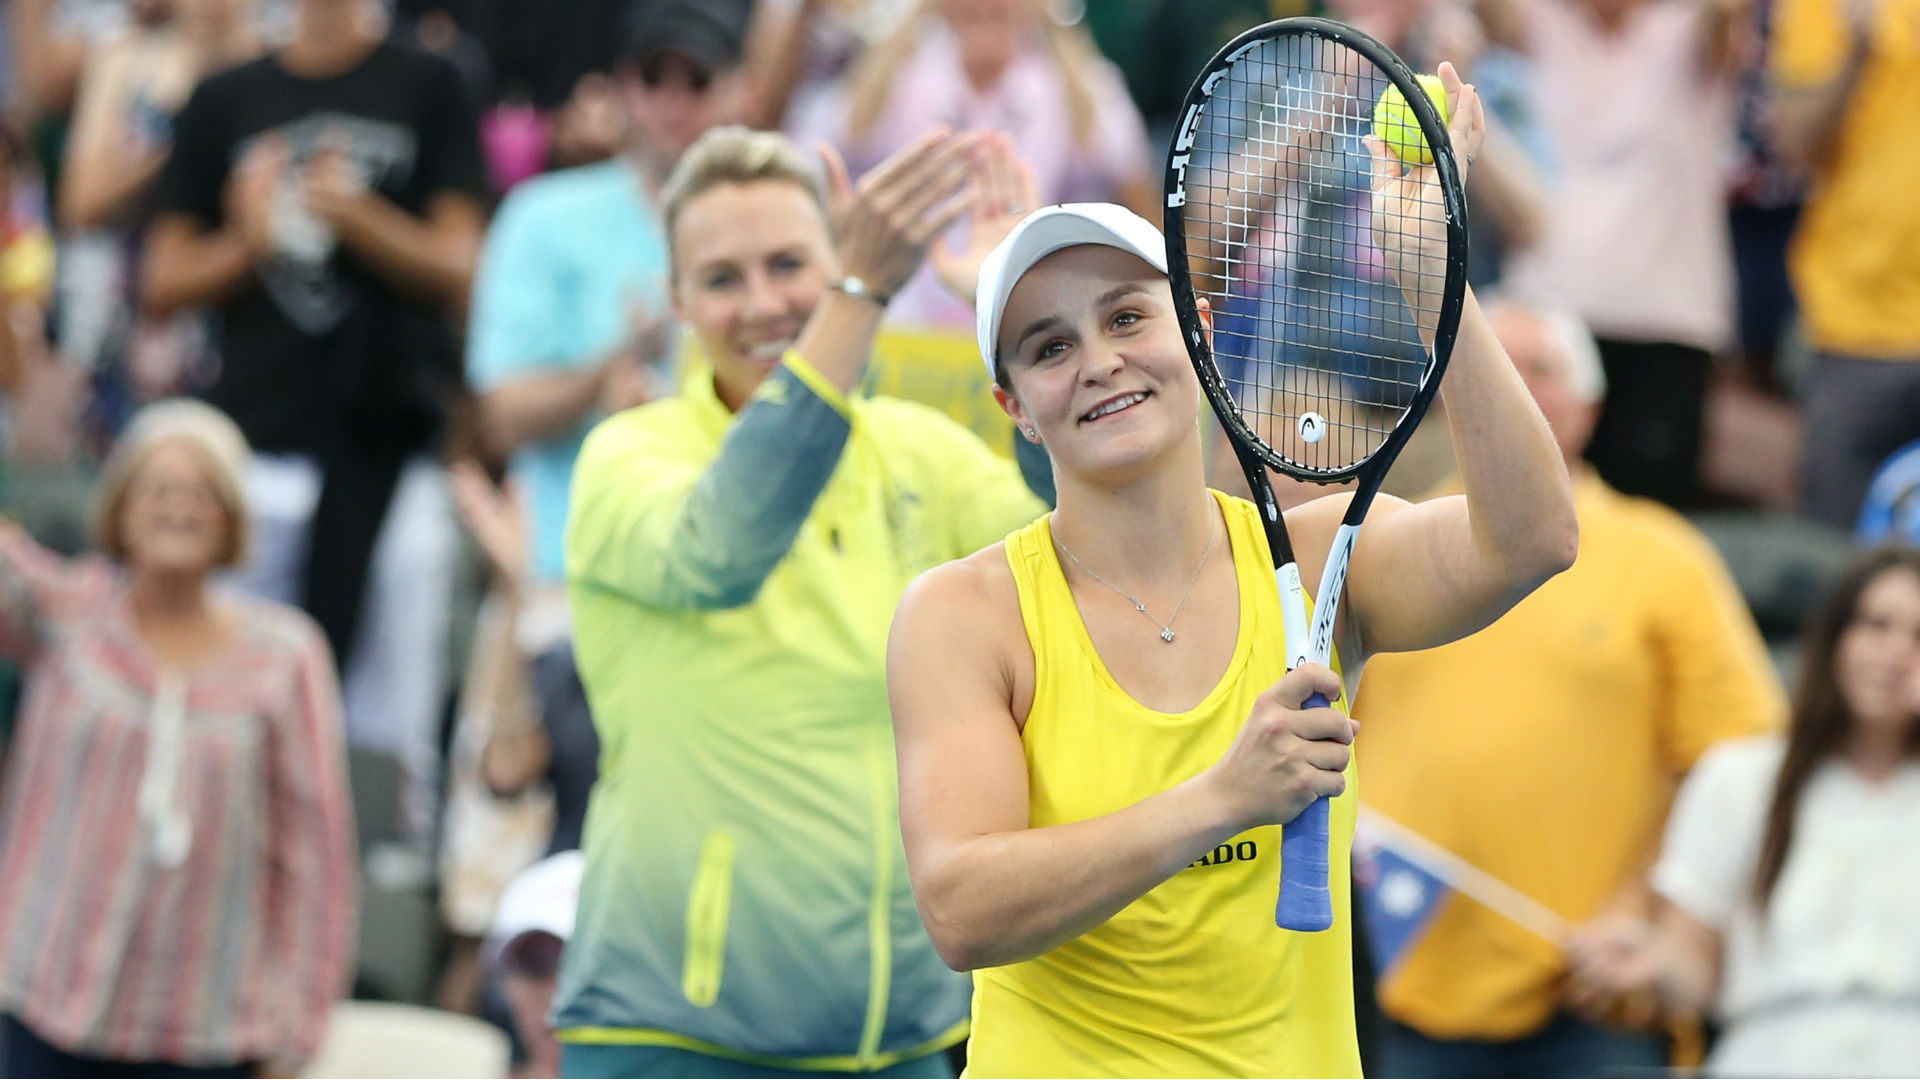 Fed Cup: Australia progress to final after Ash Barty-Sam Stosur doubles victory